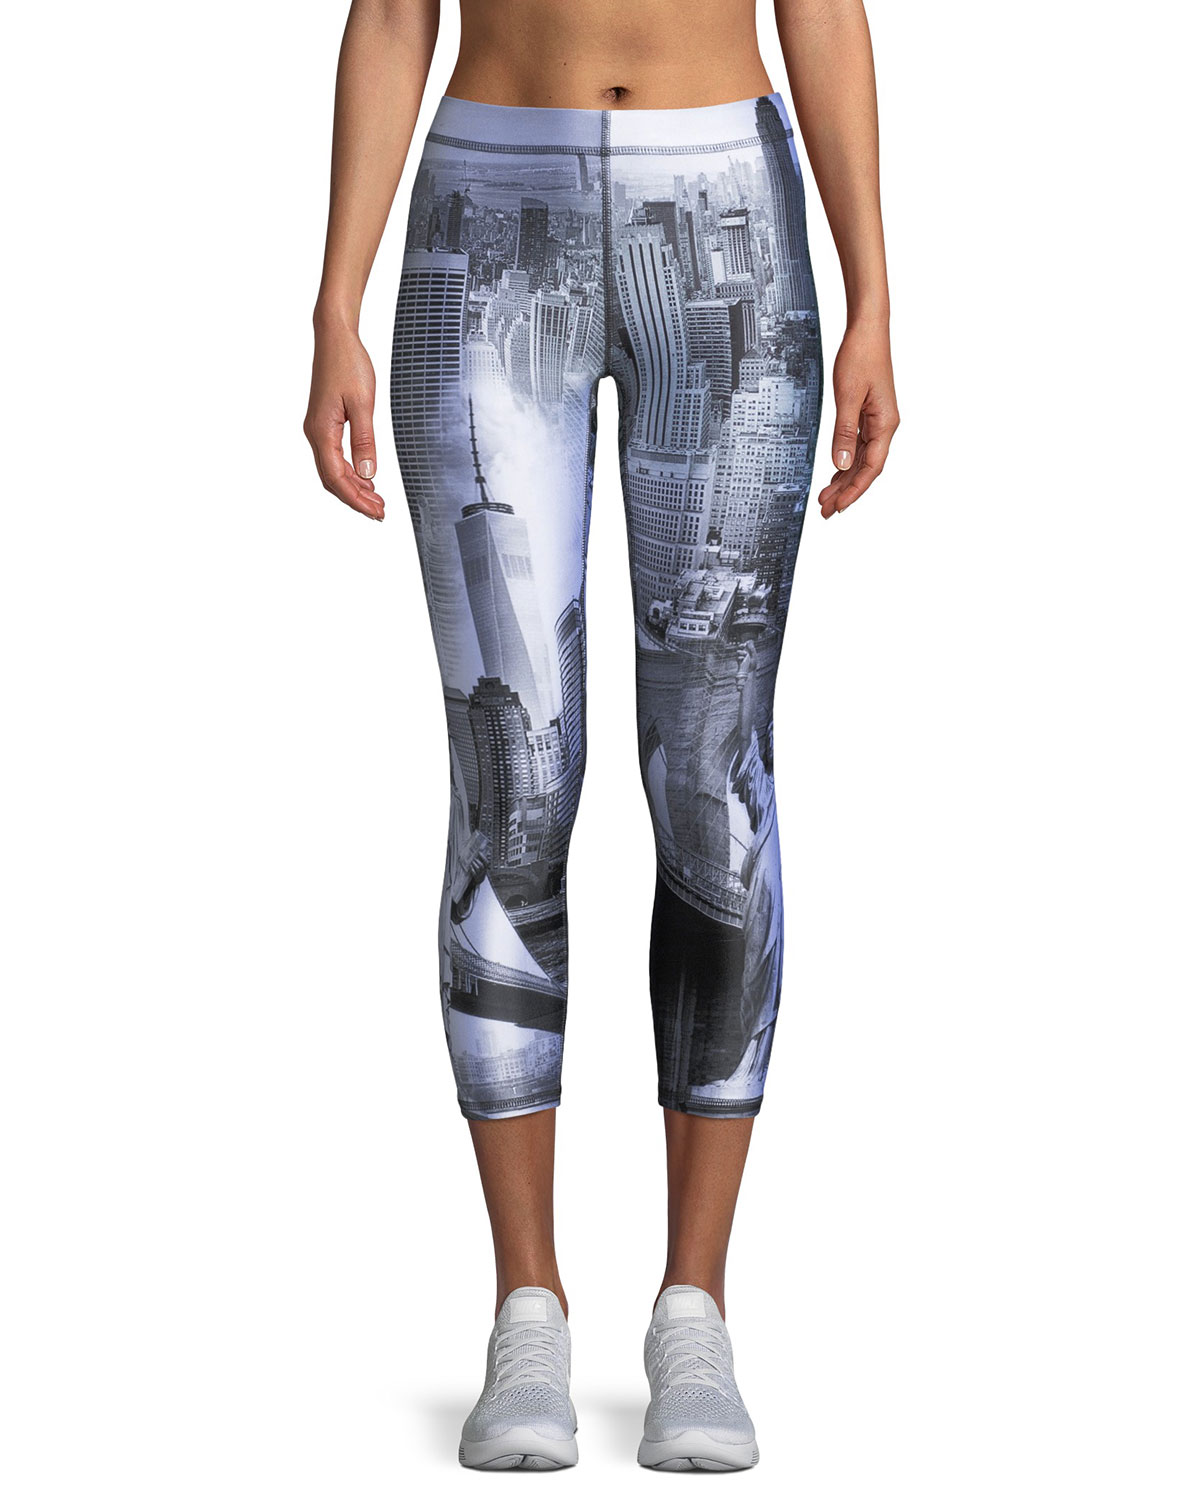 Concrete Jungle Capri Leggings